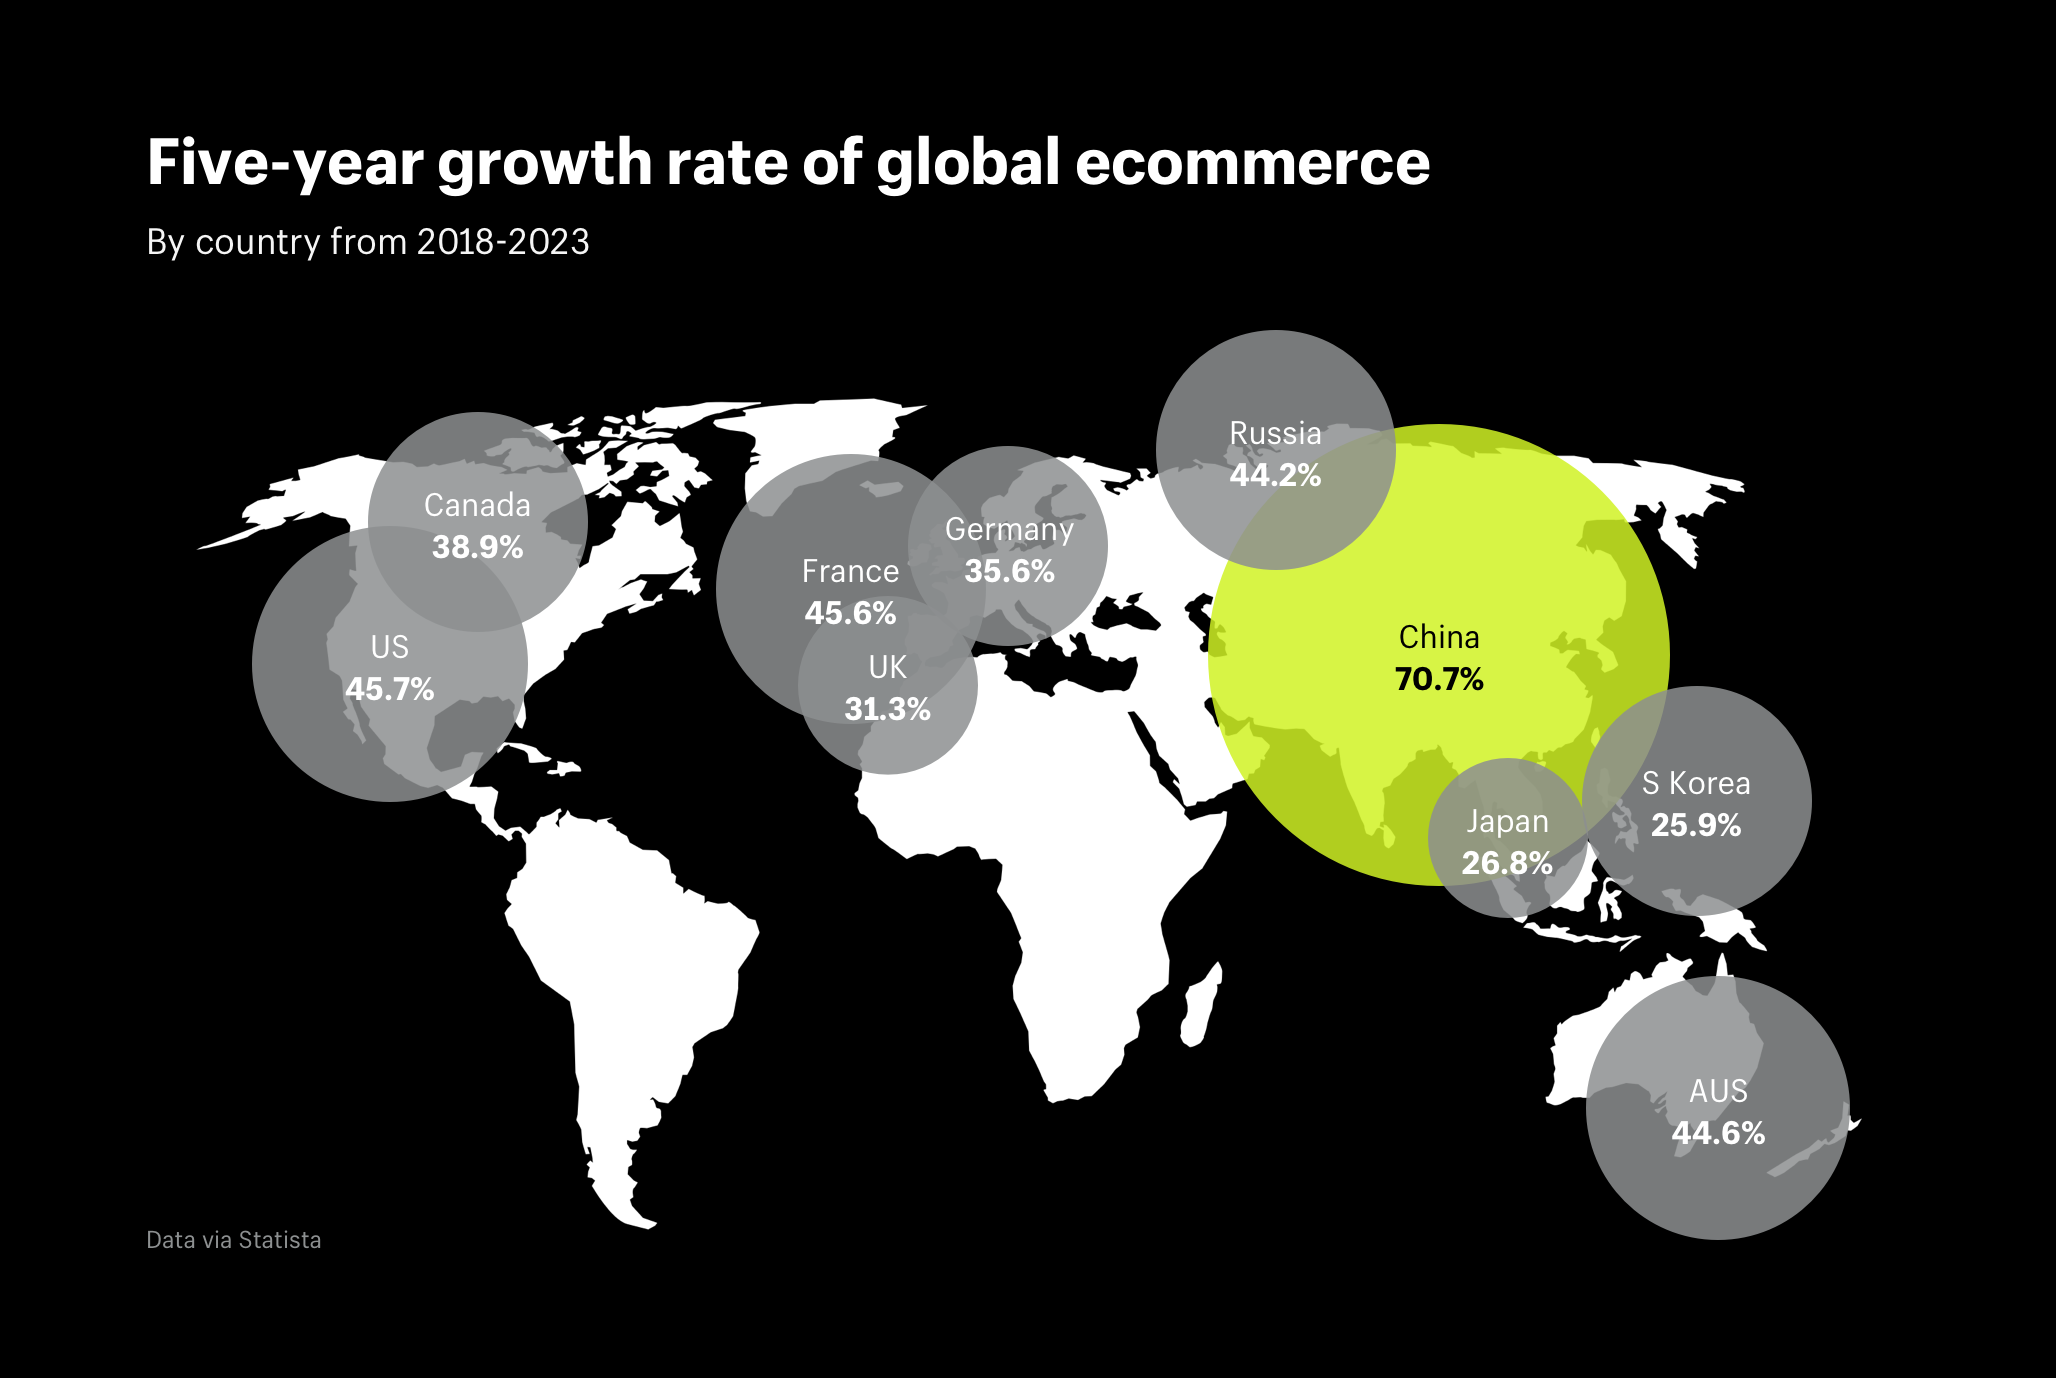 Five-year growth rate of global ecommerce (map)